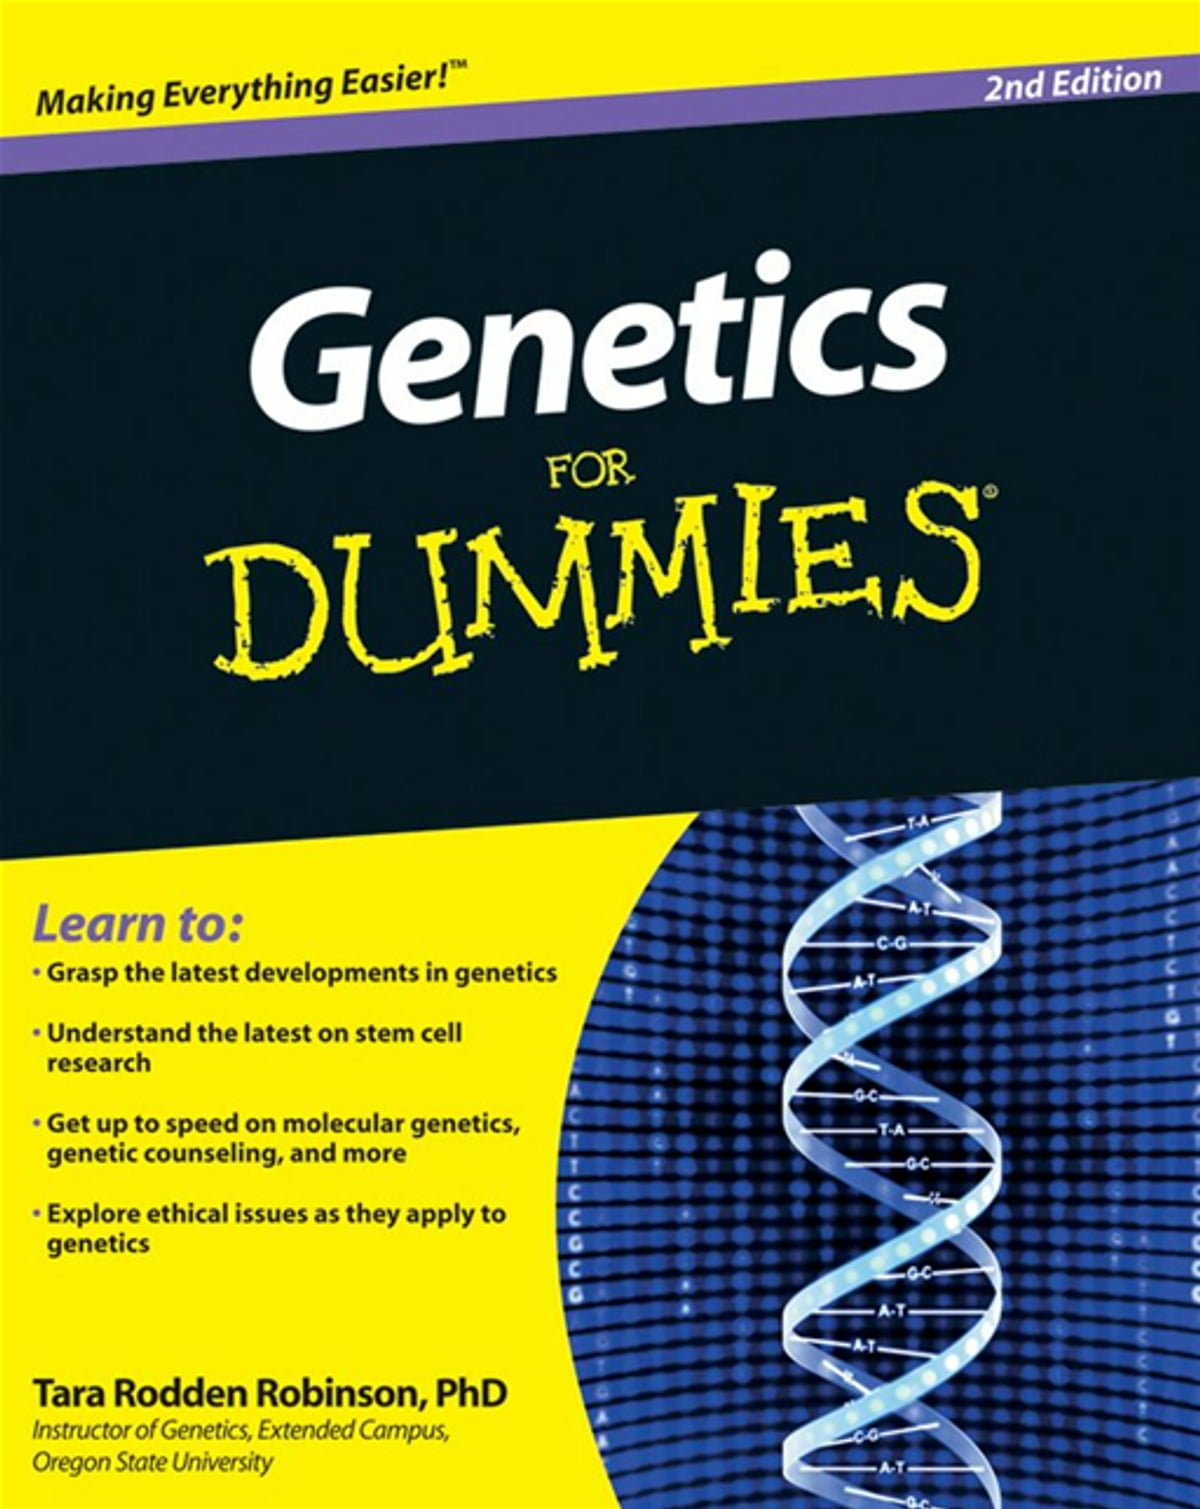 Genetics For Dummies eBook by Tara Rodden Robinson - 9780470634486 |  Rakuten Kobo